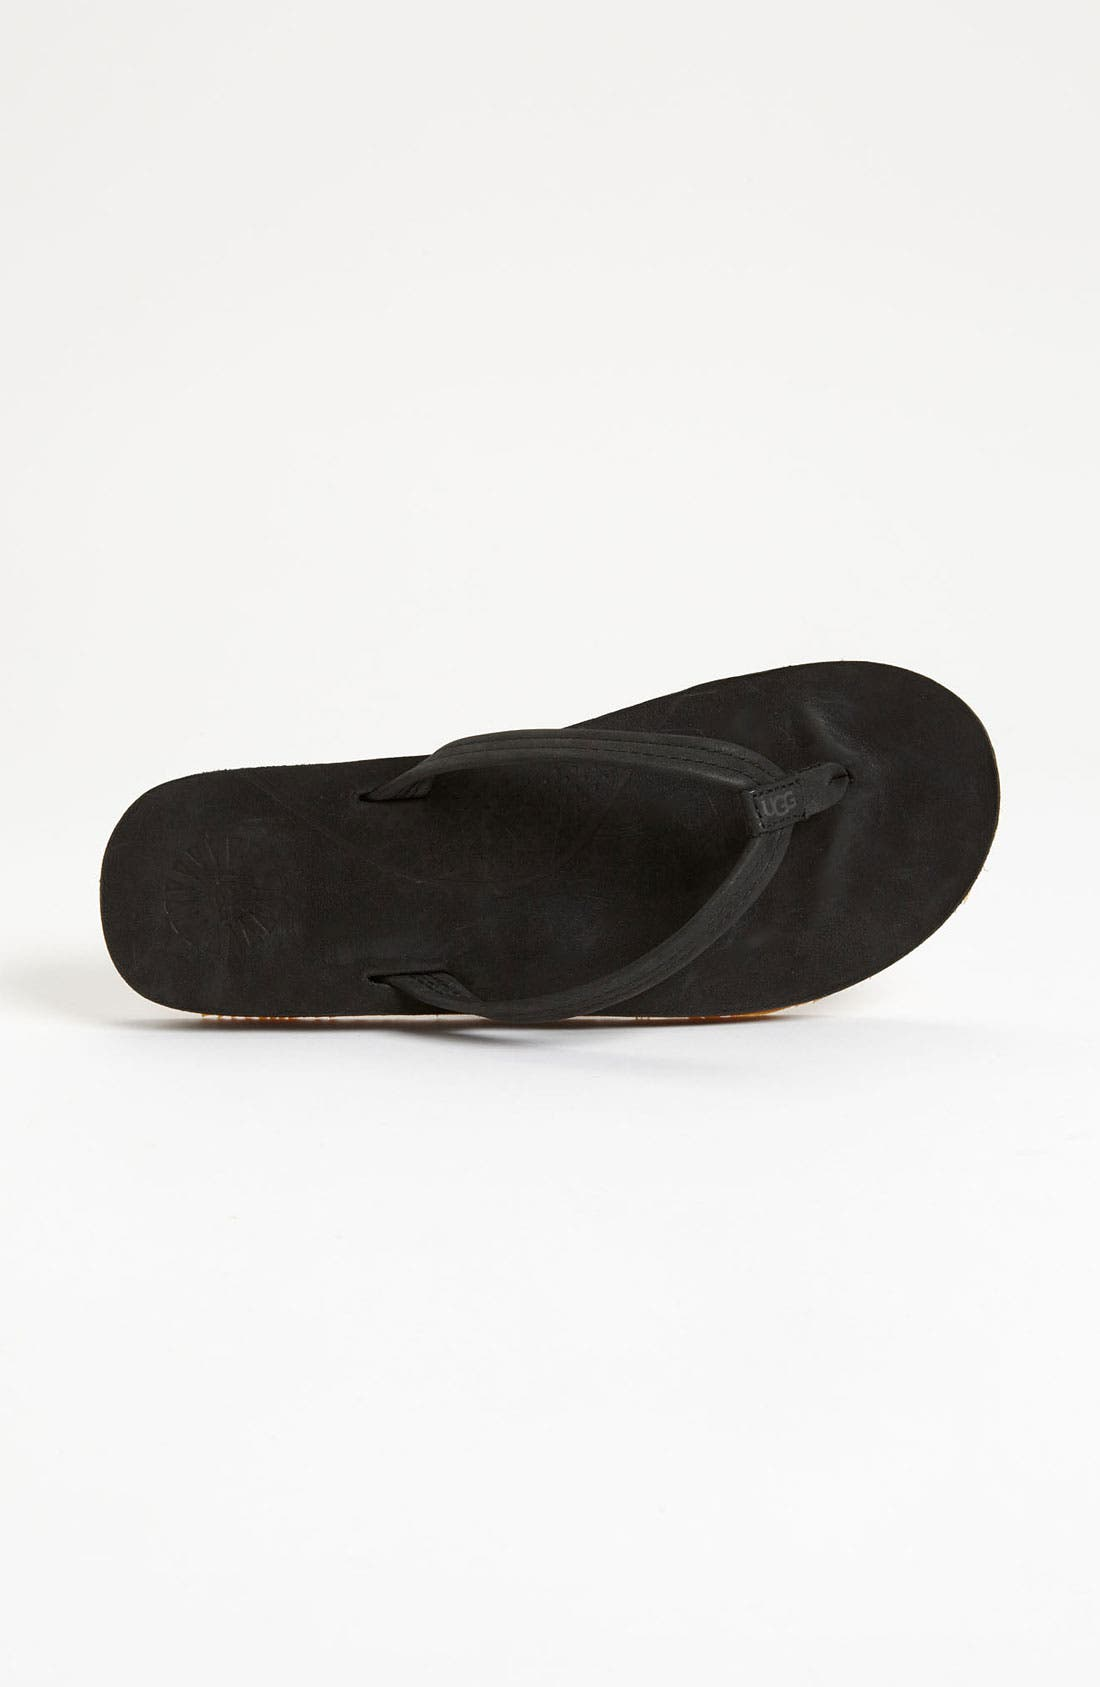 Alternate Image 3  - UGG® 'Kayla' Thong Sandal (Women)